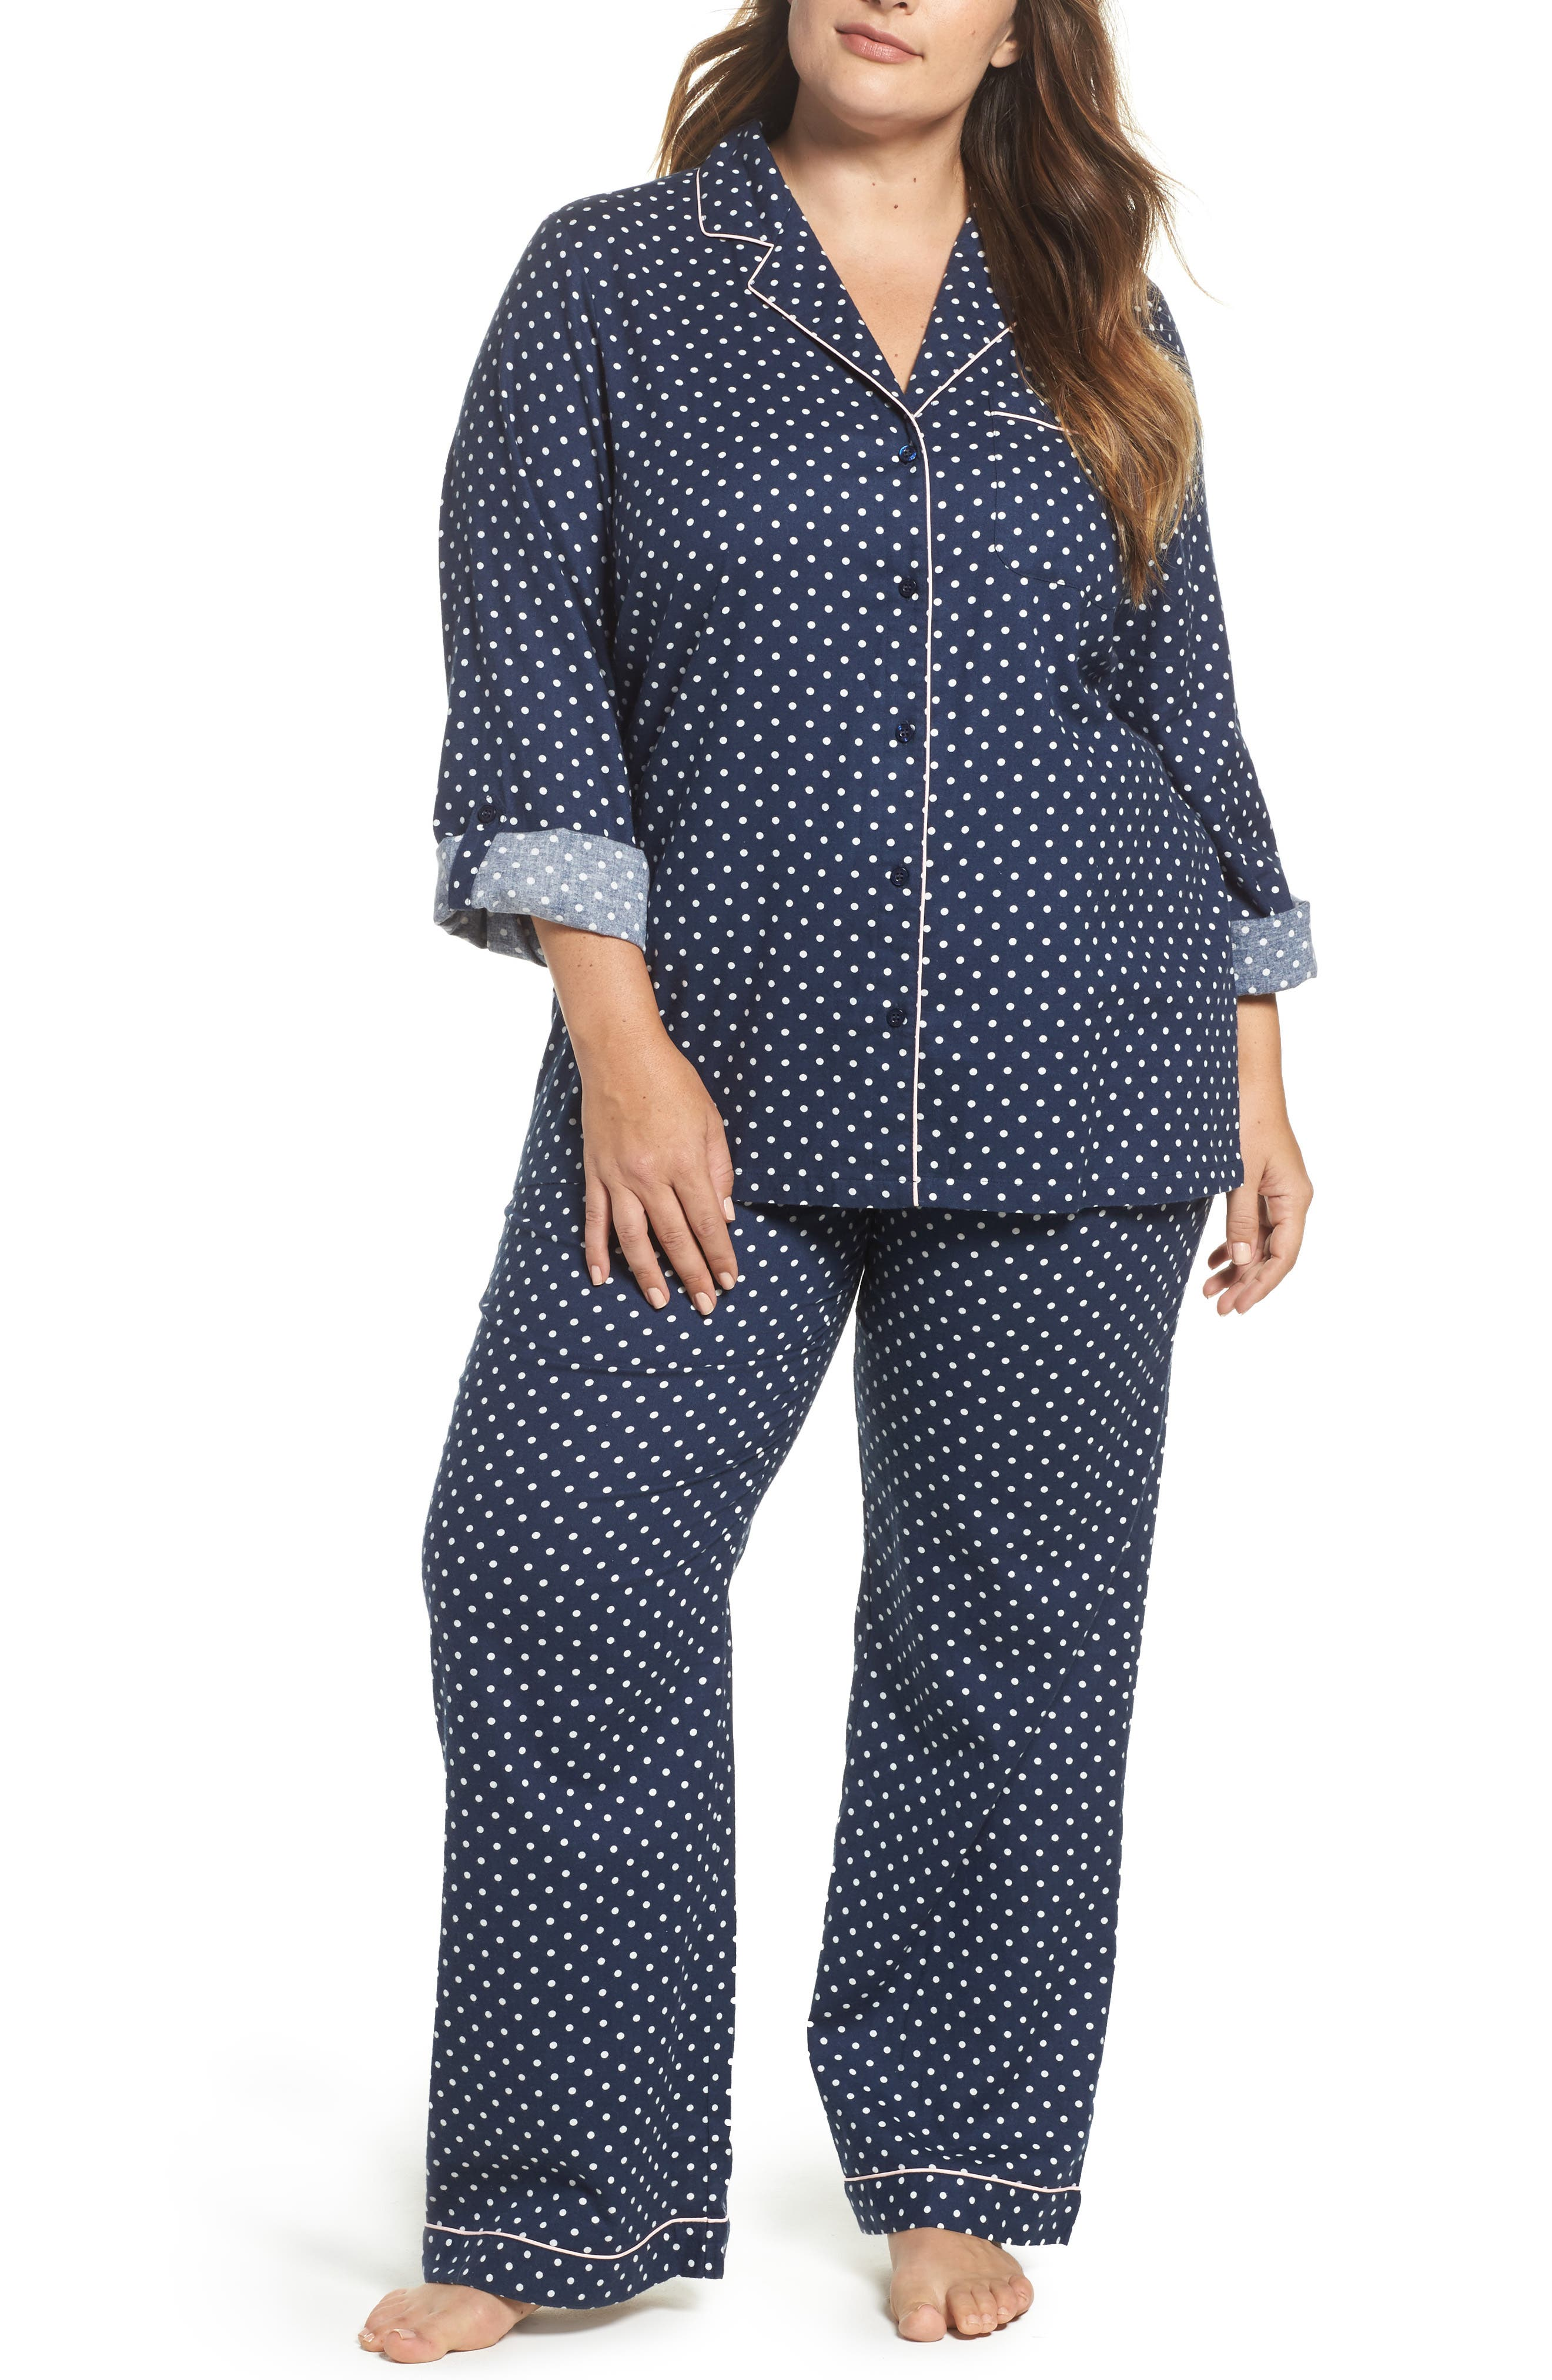 Alternate Image 1 Selected - Nordstrom Lingerie Cotton Twill Pajamas (Plus Size)